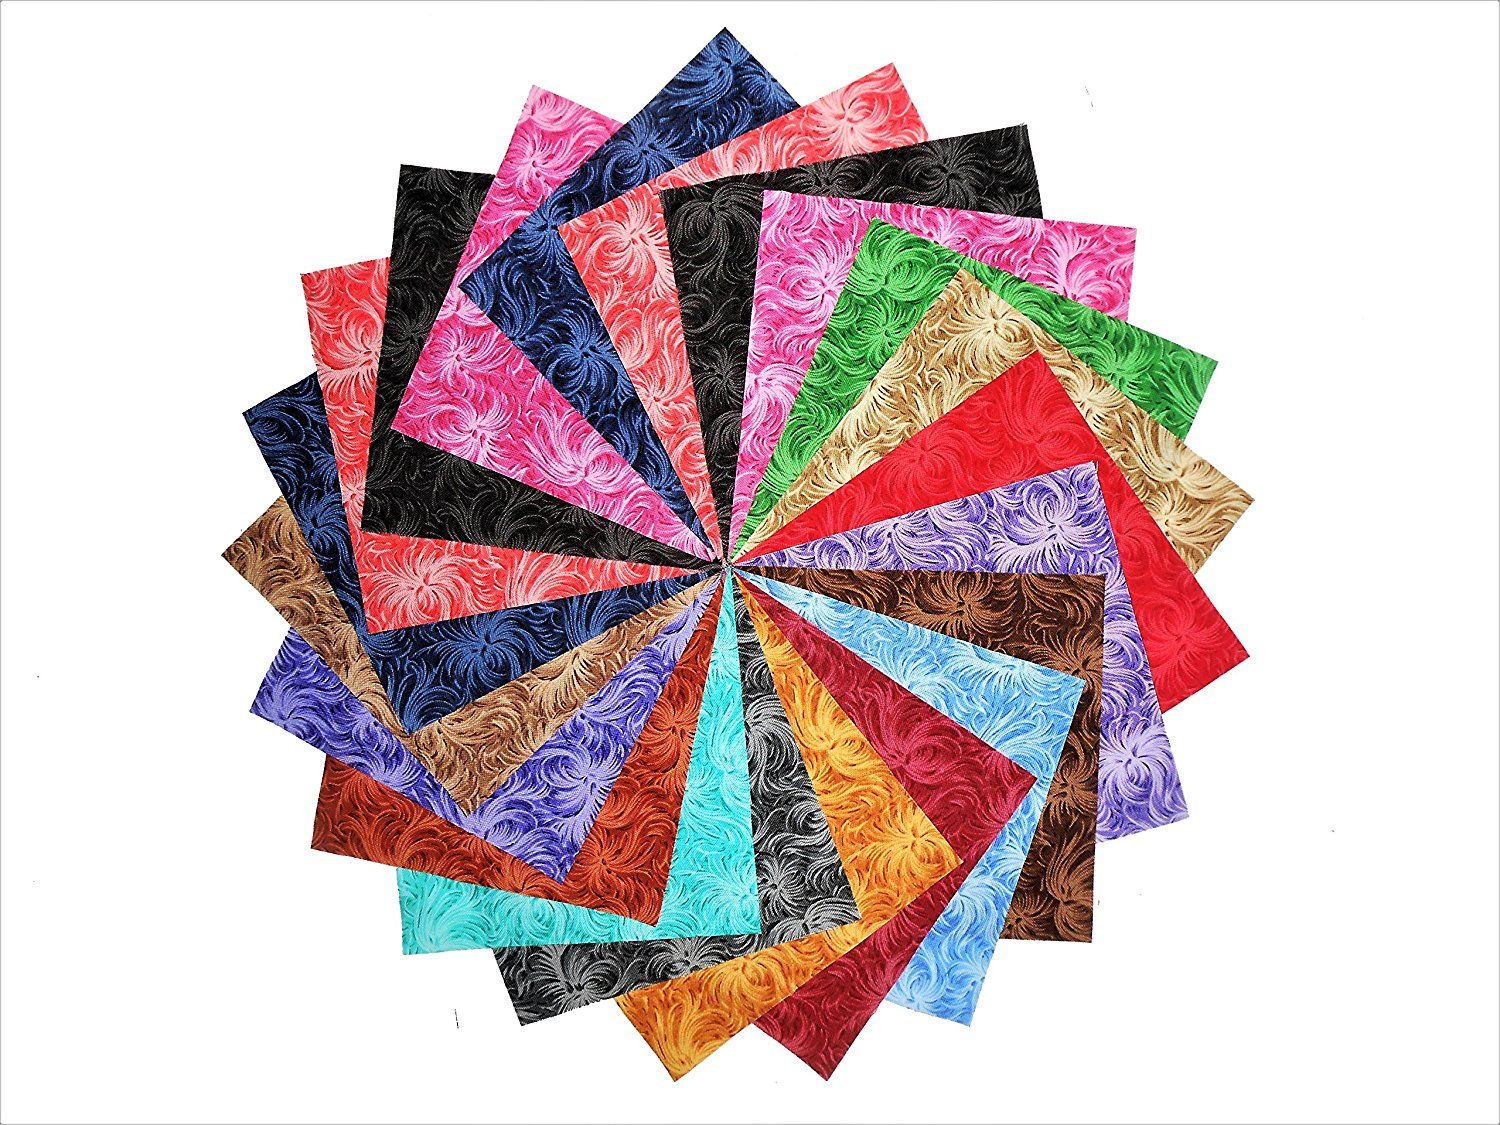 quilt new parade fq cotton itm quilting sewing patchwork fabric peacock material